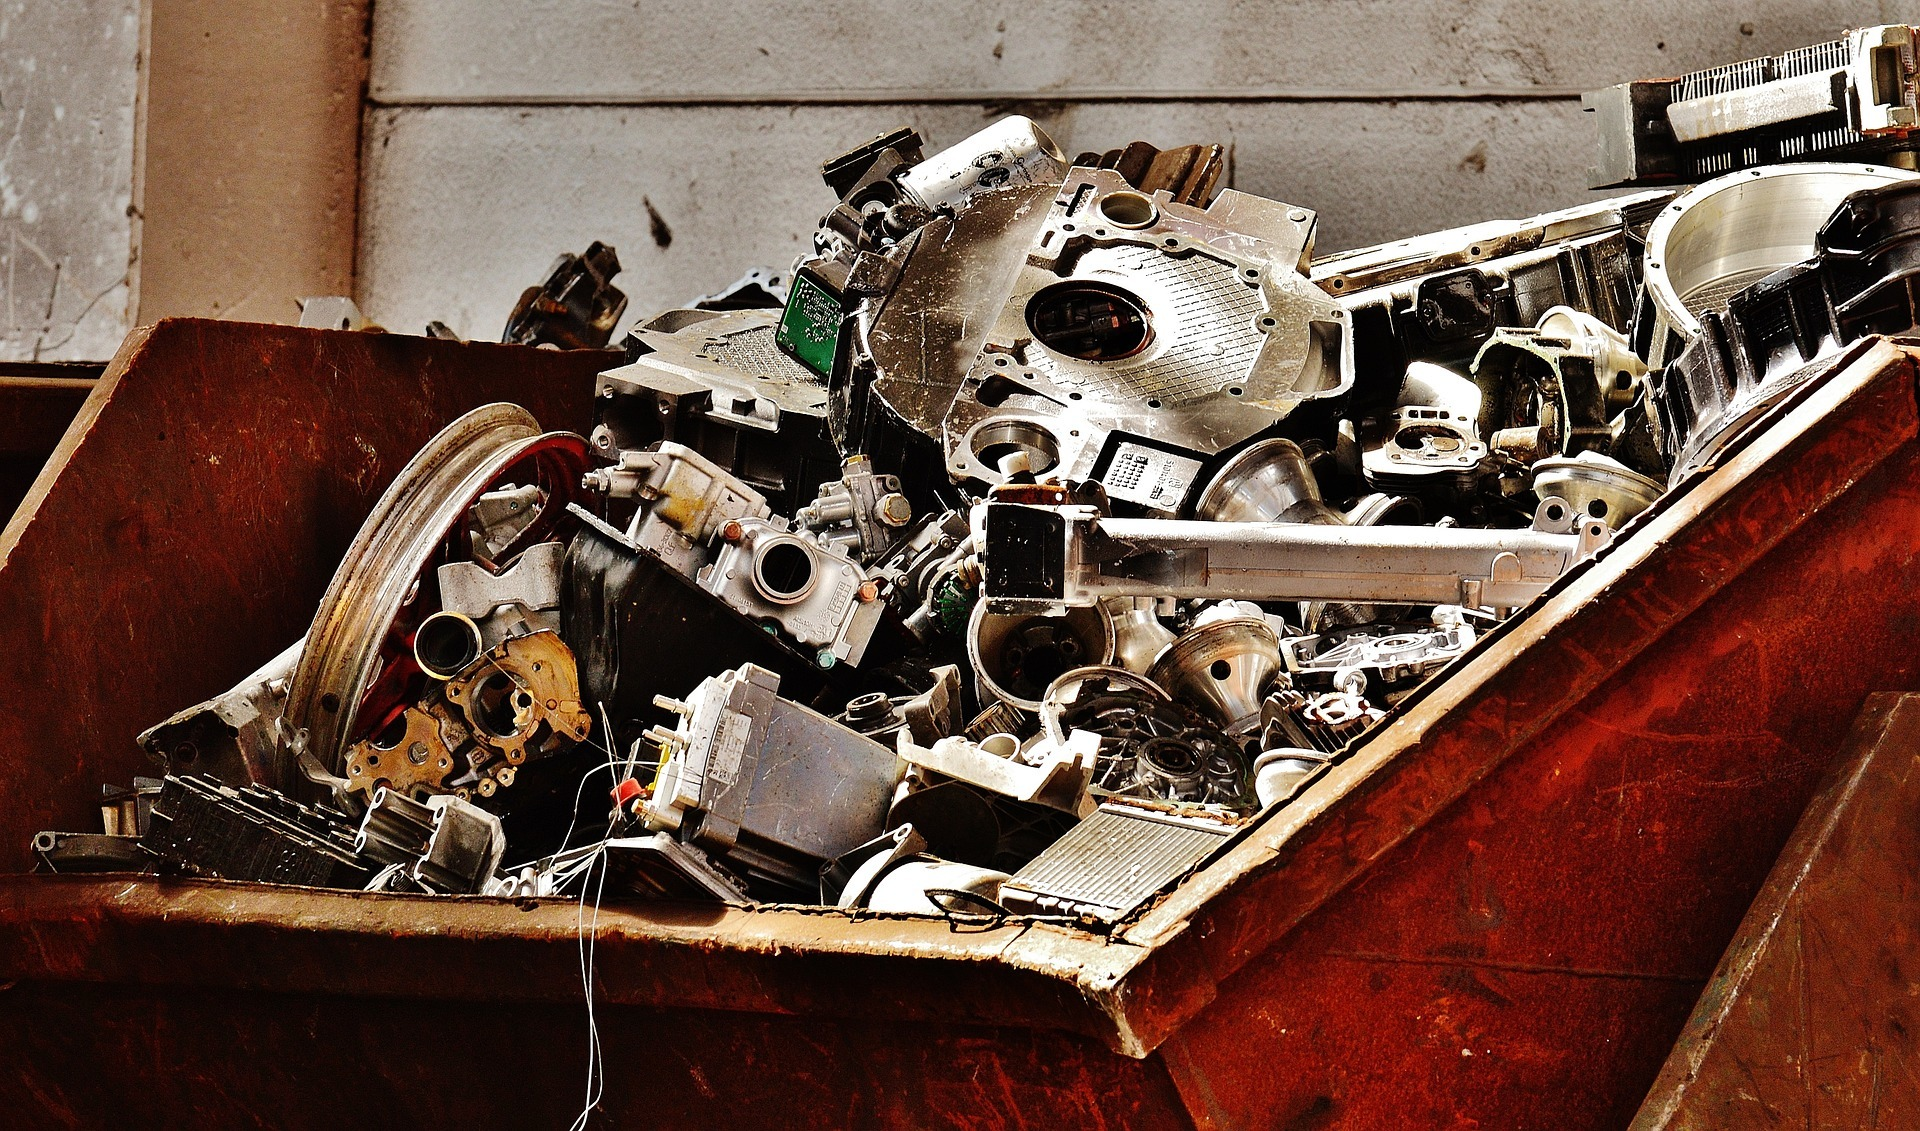 Scrap metal will be recycled in UK.